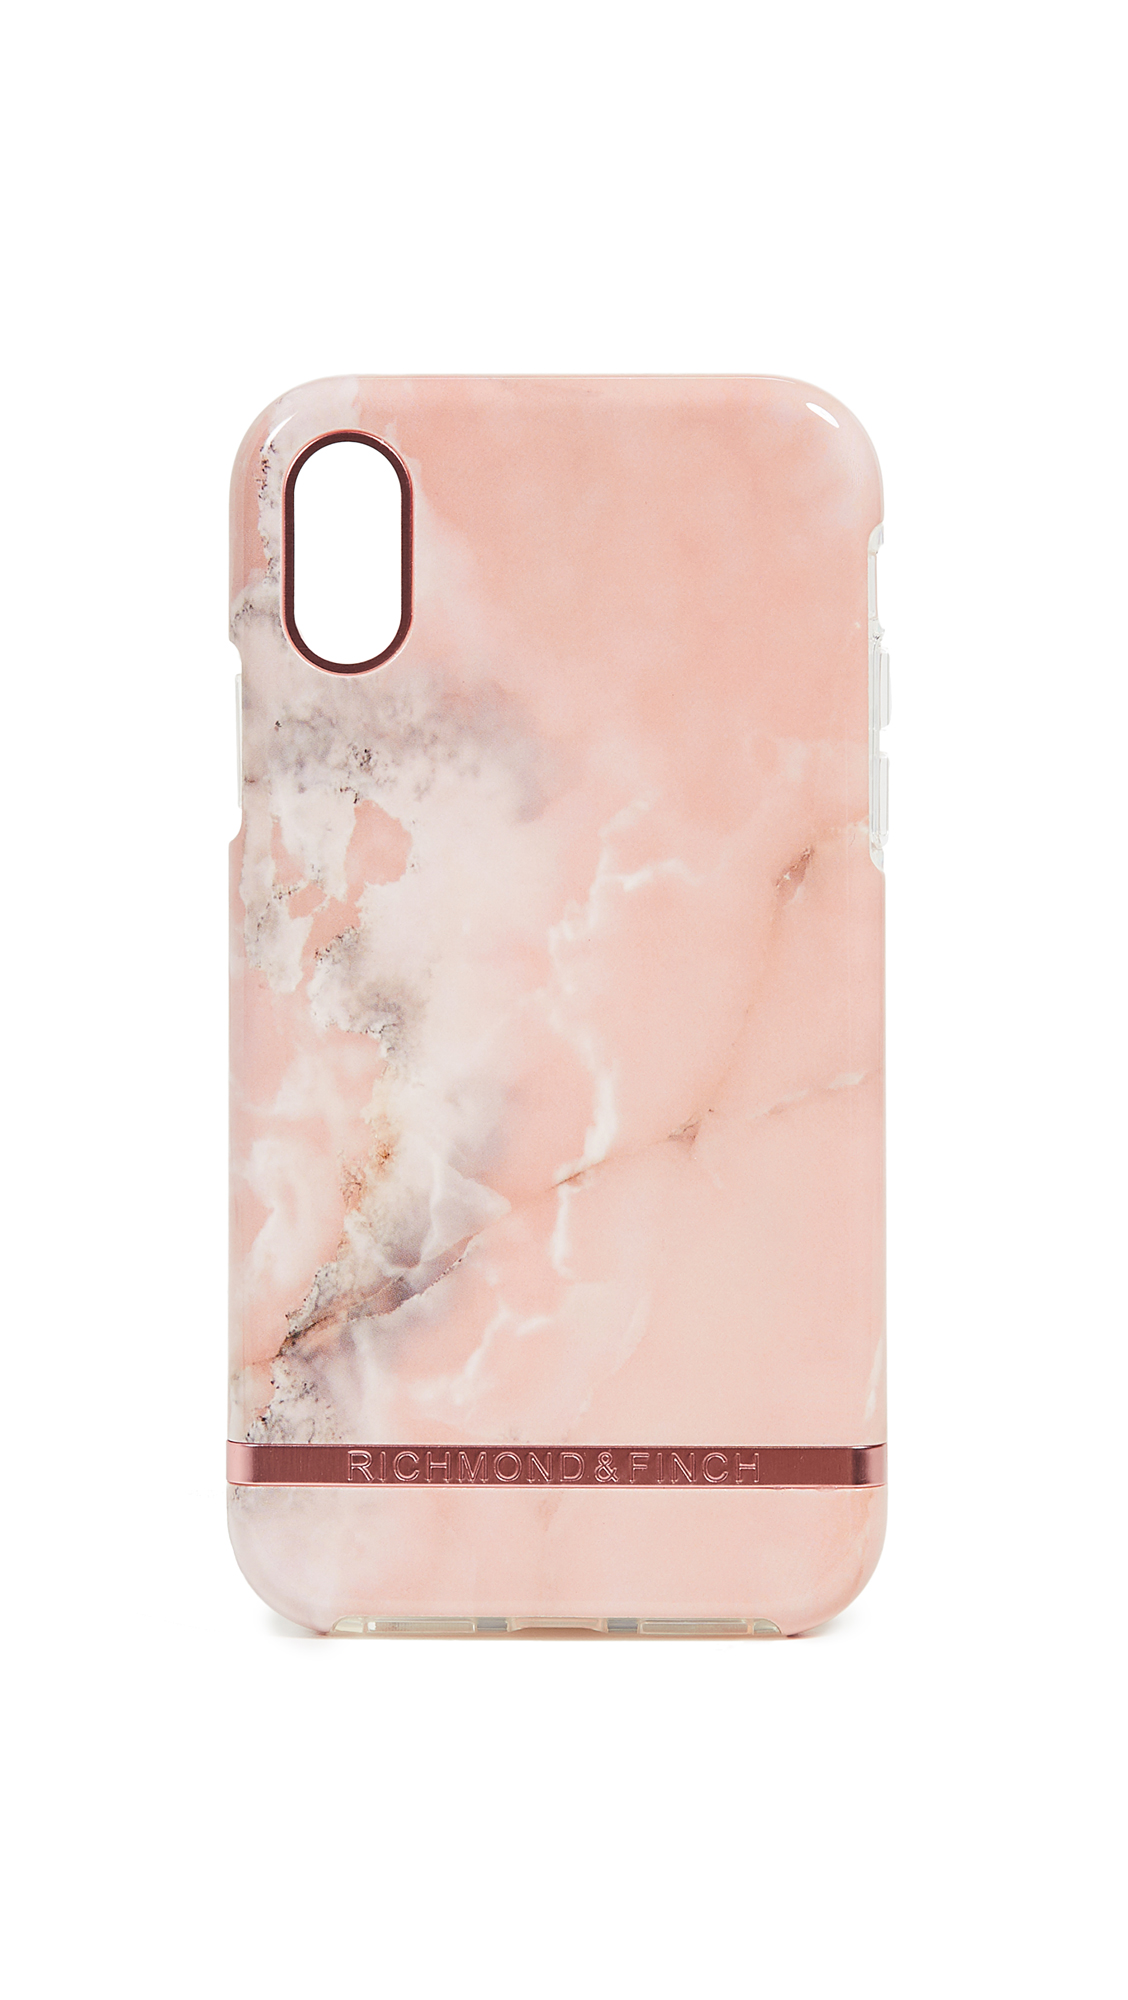 RICHMOND & FINCH Pink Marble Iphone Xr Case in Pink/Rose Gold